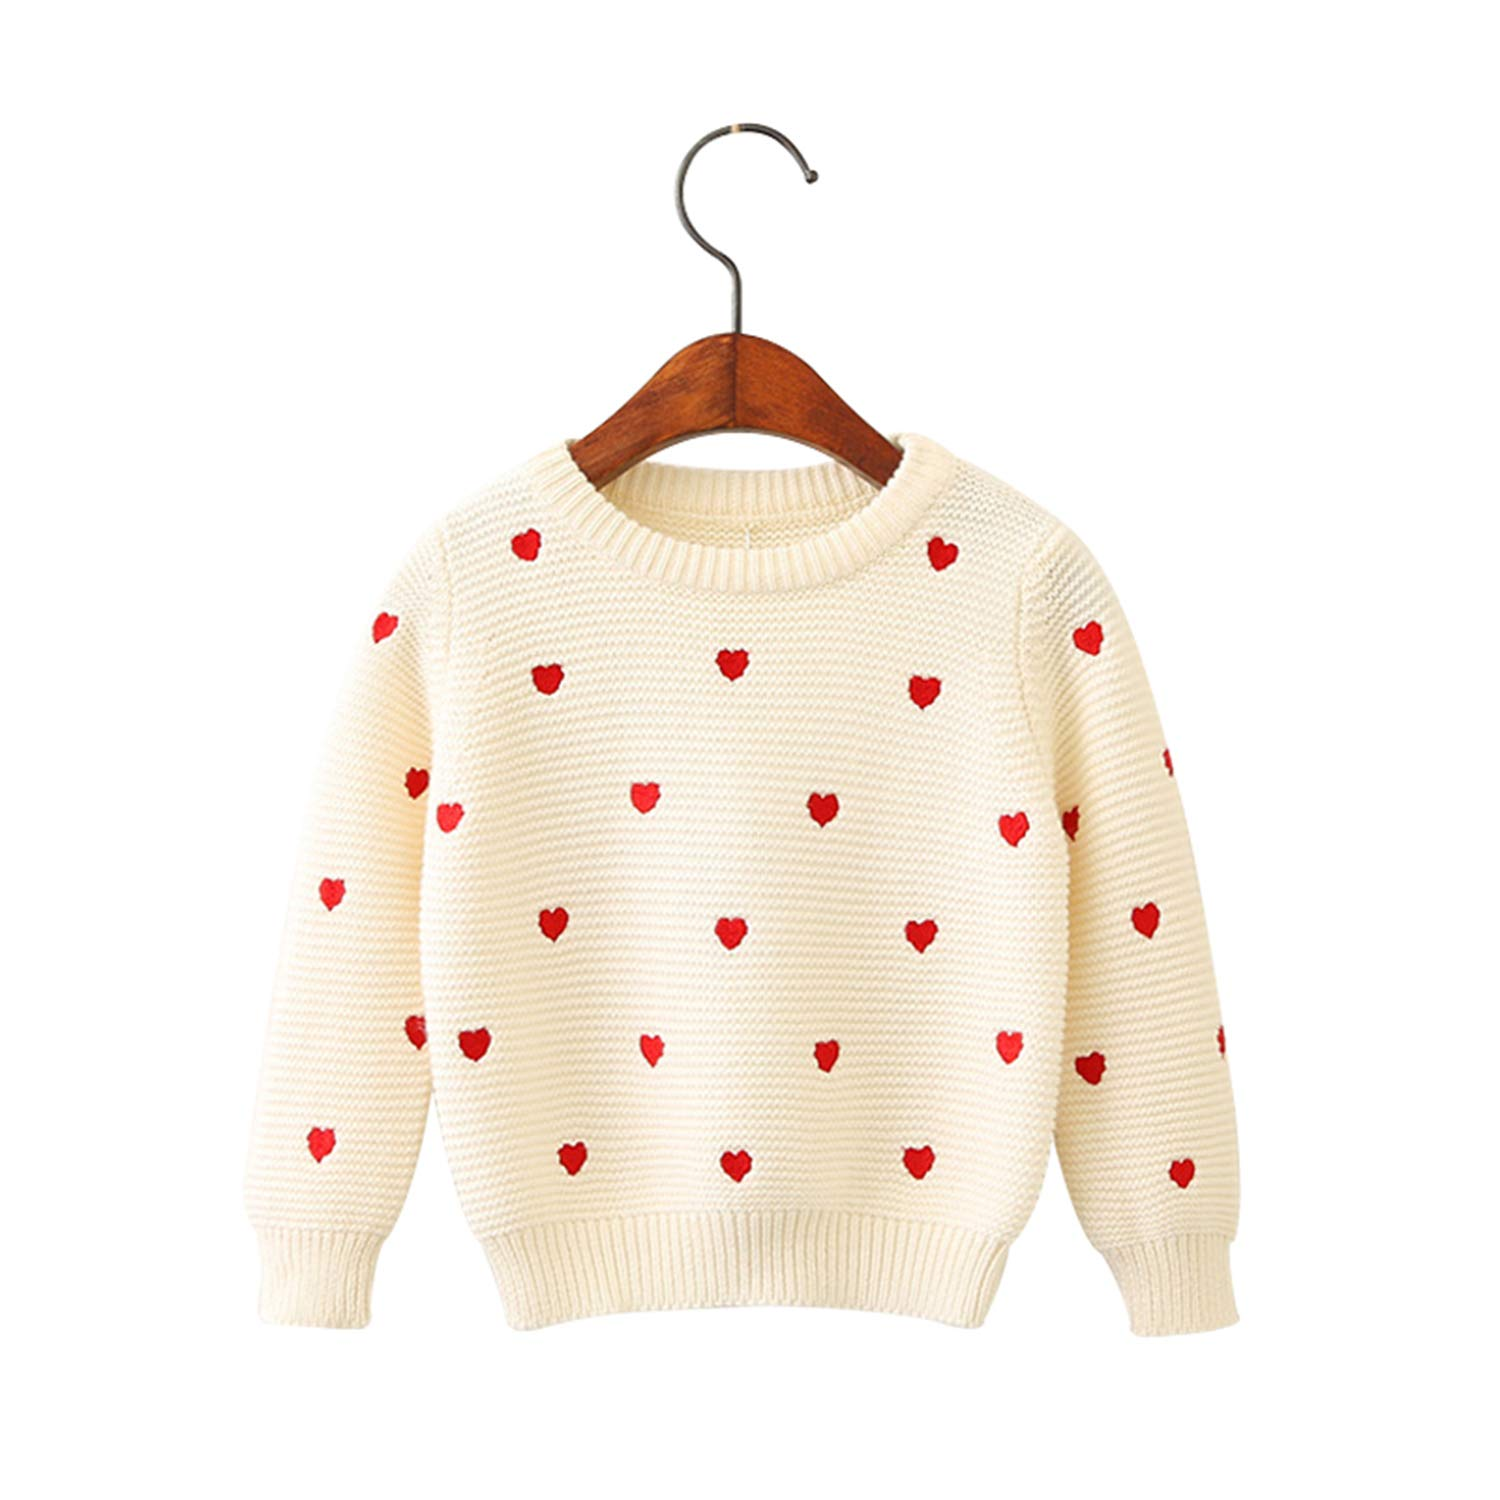 7ef28c3e1c Amazon.com  Sweater for Girls Sweater Fashion Girl Long Sleeved Spring Baby  Girl Knit Pullover Casual Sweaters  Clothing